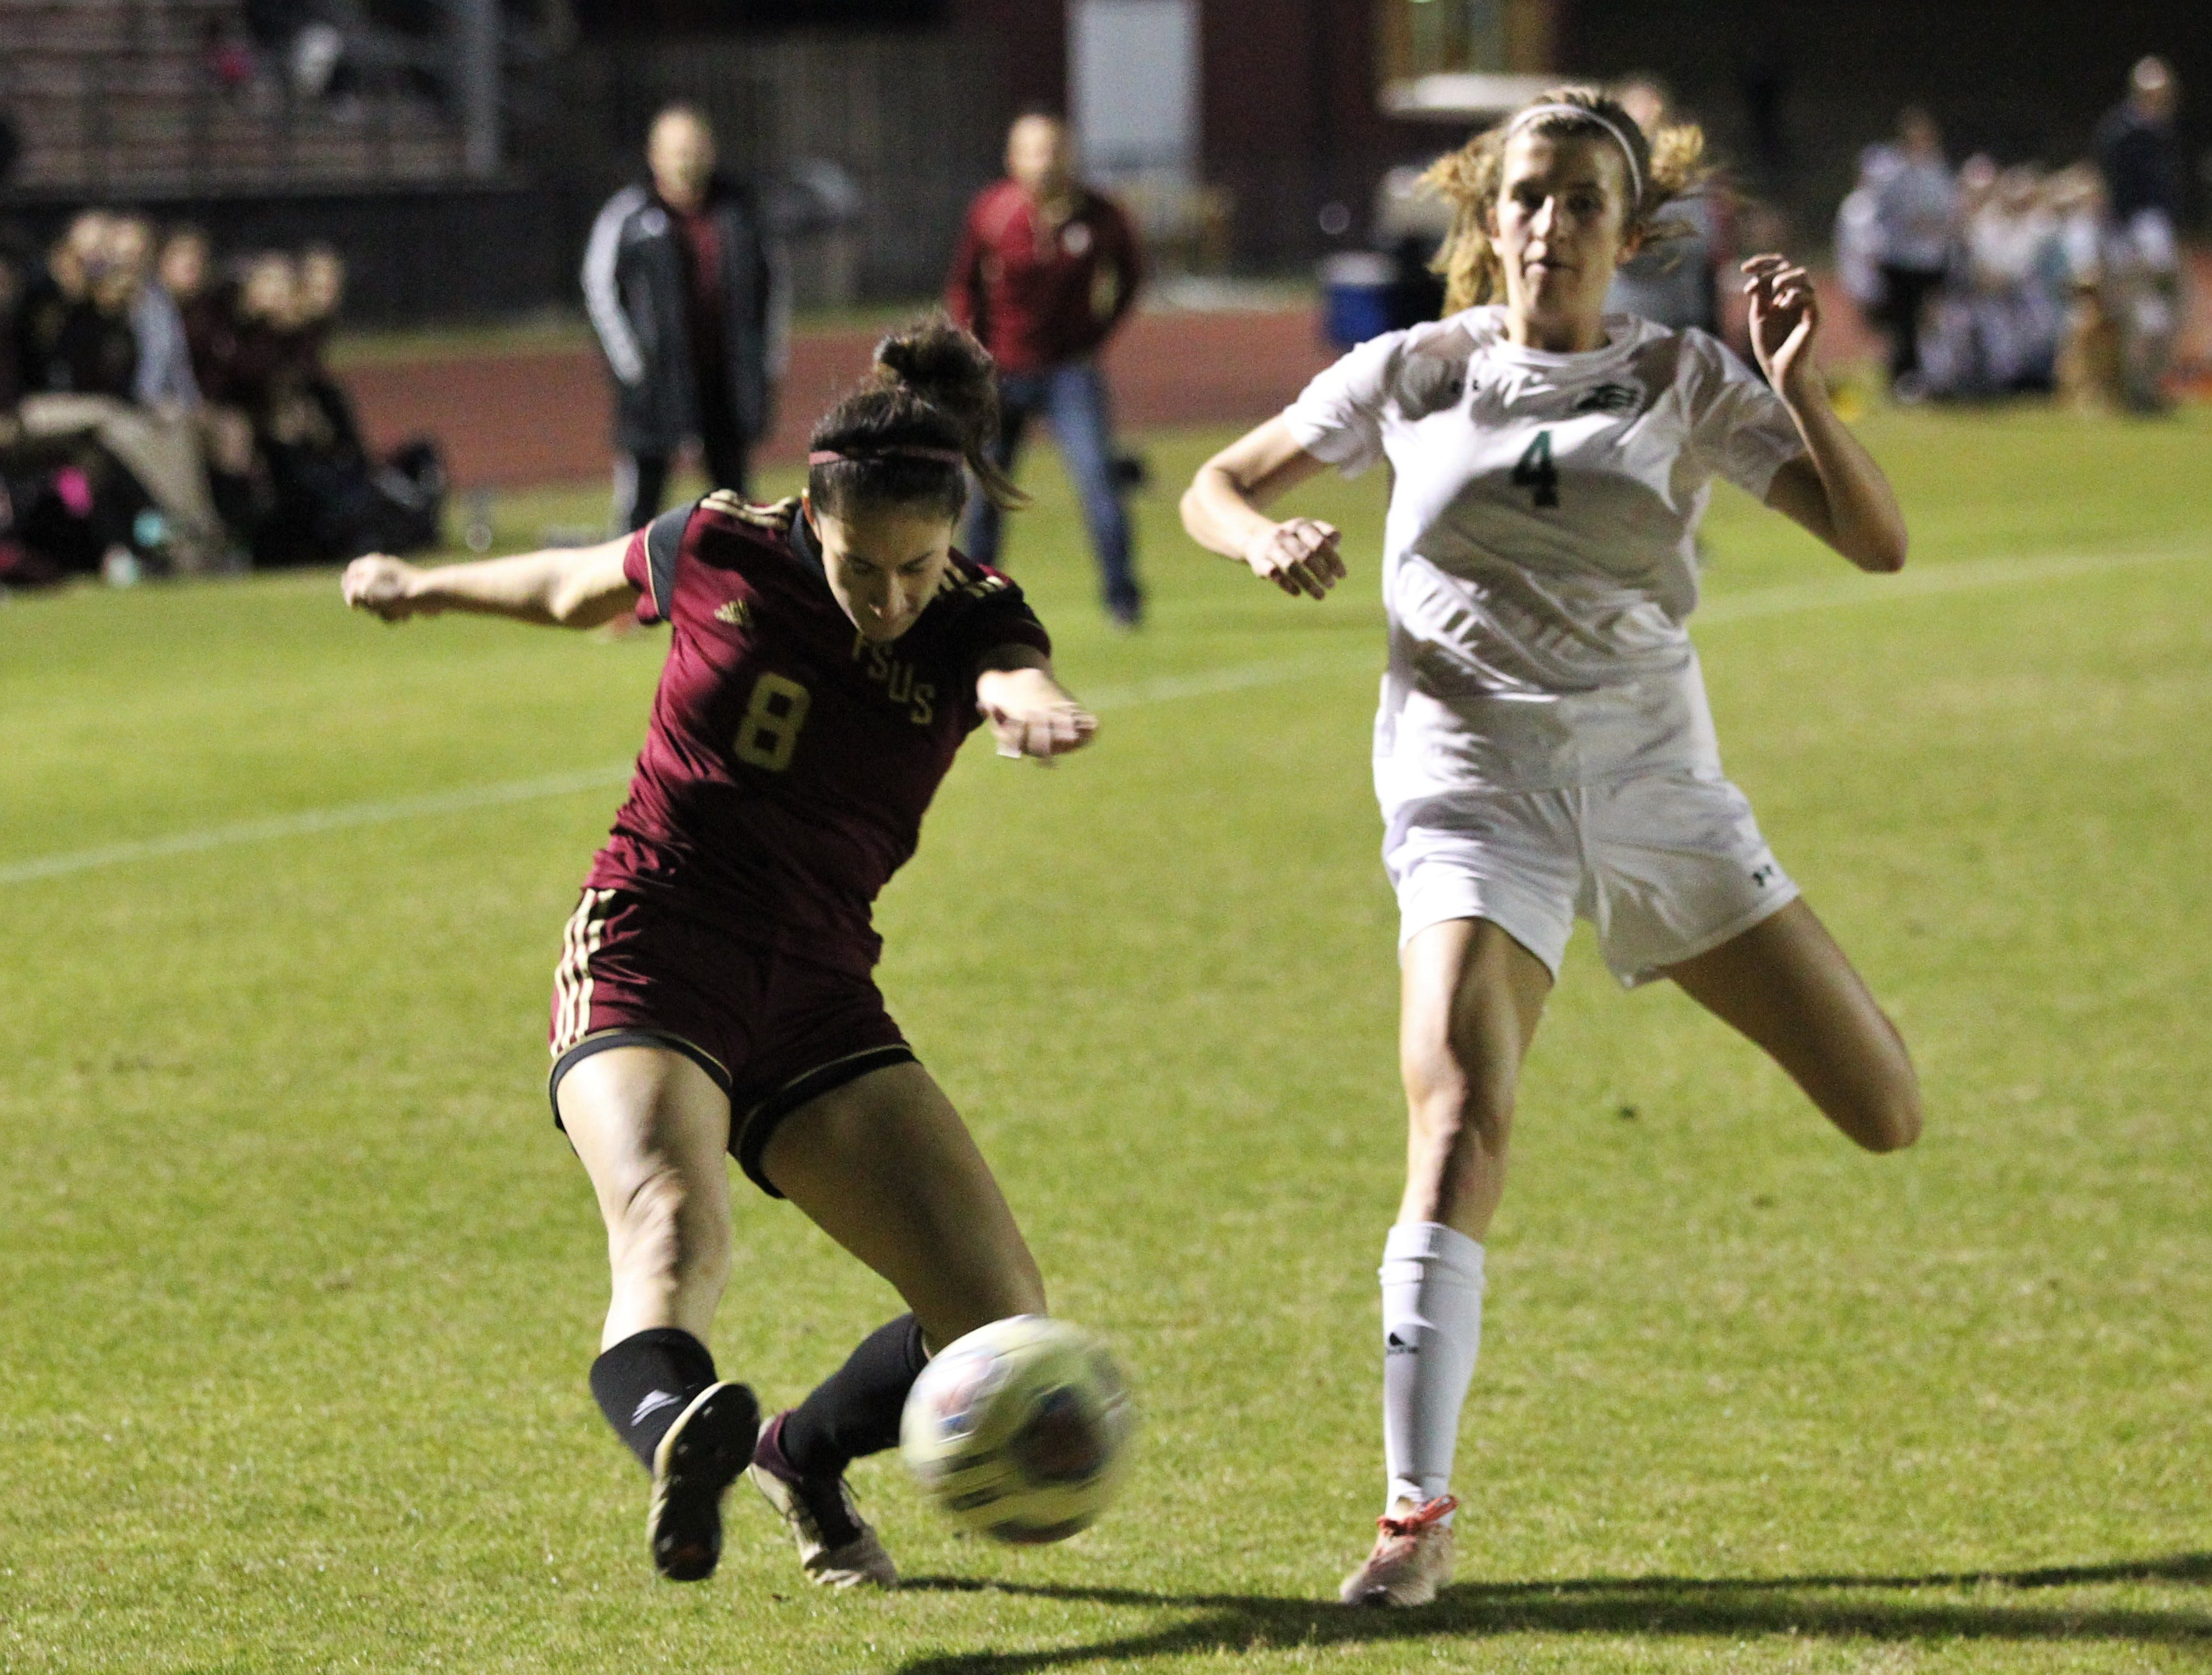 Florida High's Lily Quijada takes a cross as South Walton edged the Seminoles 5-4 in a penalty-kick shootout during a Region 1-2A semifinal on Feb. 8, 2019.